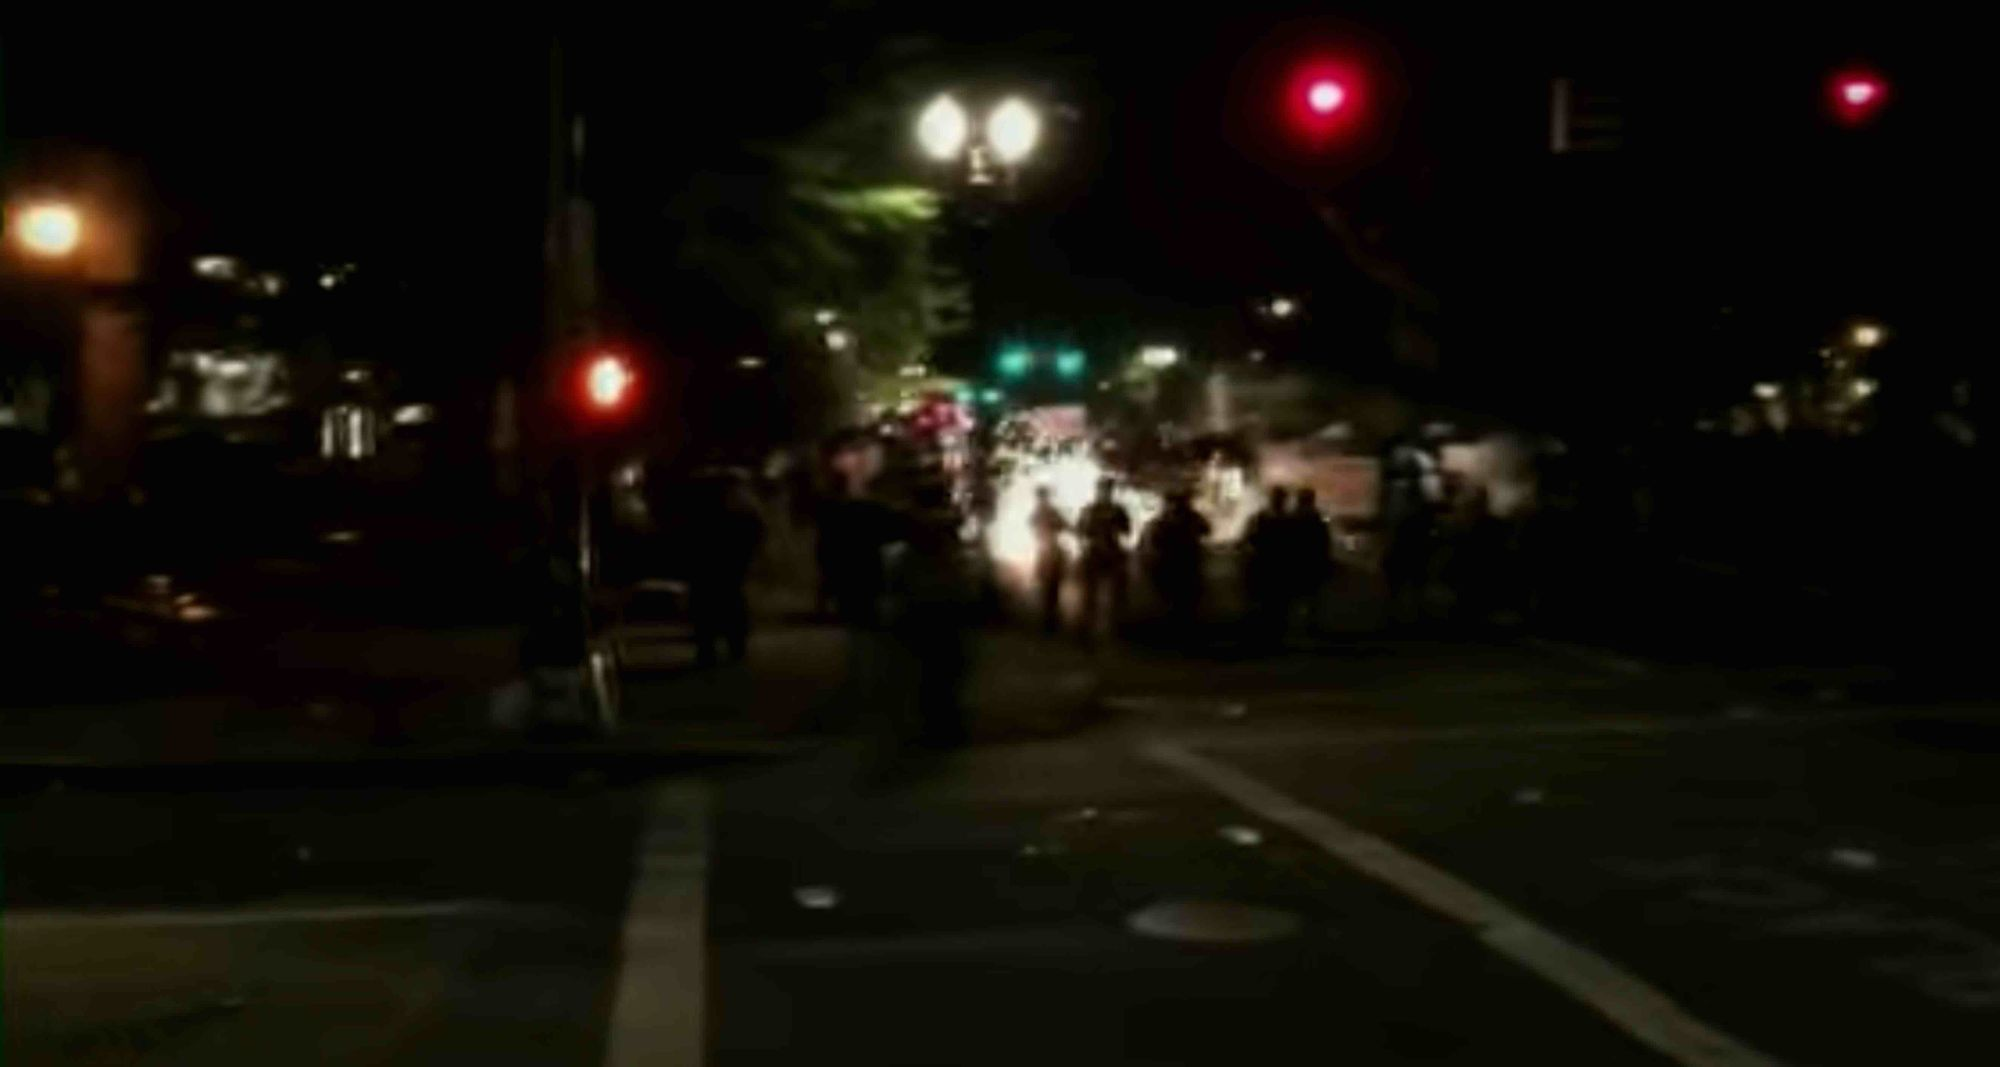 Three federal officers may be permanently blinded after Antifa laser attack in Portland